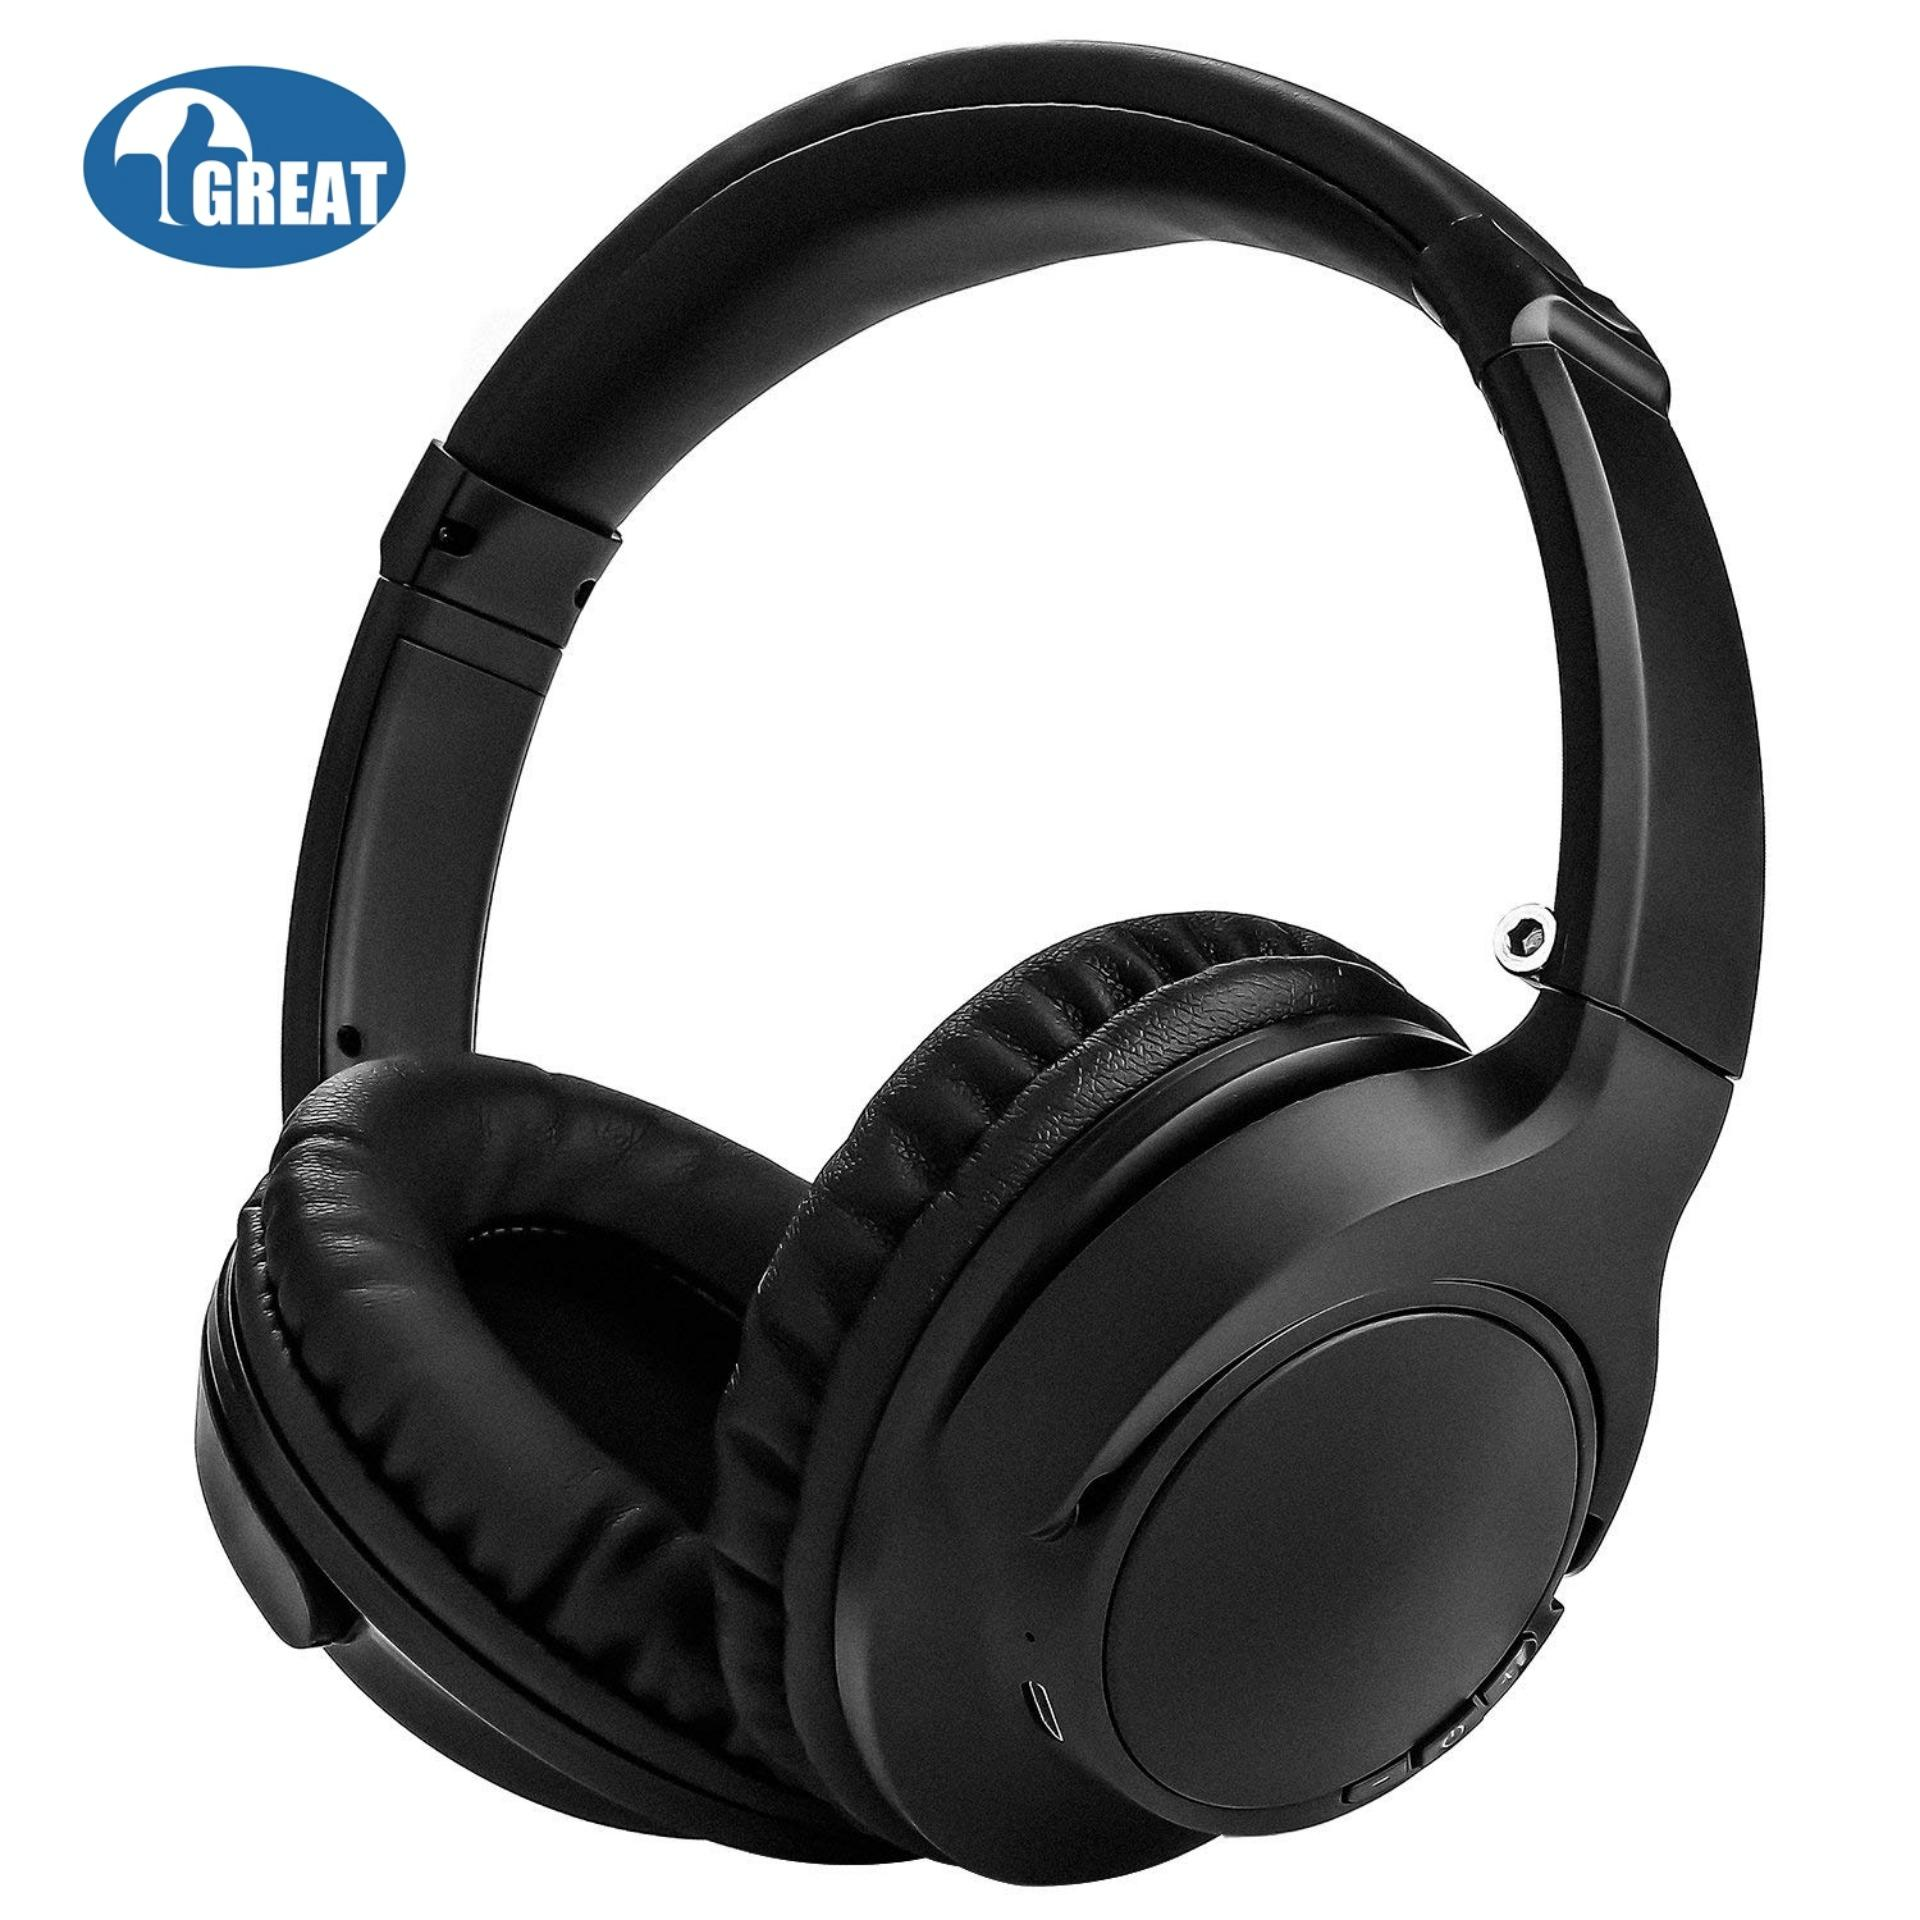 Goodgreat Bluetooth Headphones Over-Ear, Wireless Stereo Foldable Headphones Wireless And Wired Headsets With Built-In Mic, Micro Sd/tf, Fm For Iphone/samsung/ipad/pc(black) By Good&great.